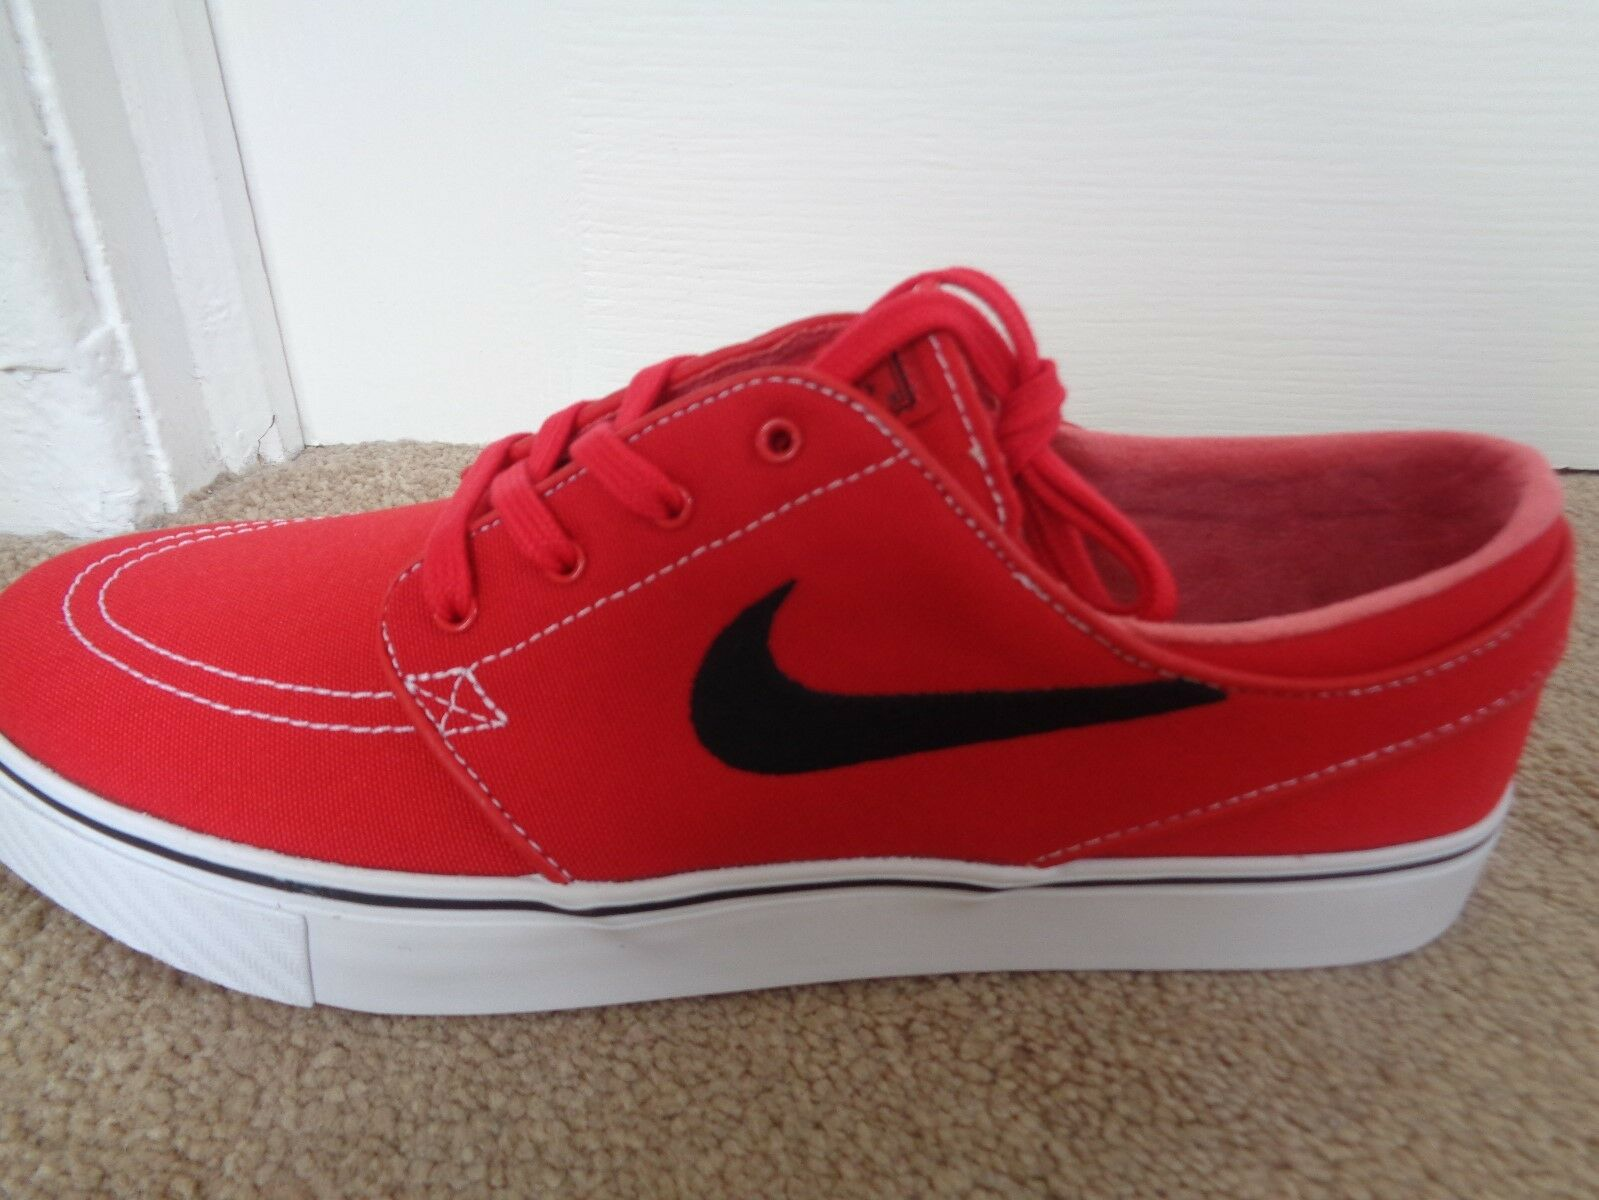 Nike Zoom 615957 Stefan Janoski CNVS trainers 615957 Zoom 603 uk 8.5 eu 43 us 9.5 NEW+ BOX 476742